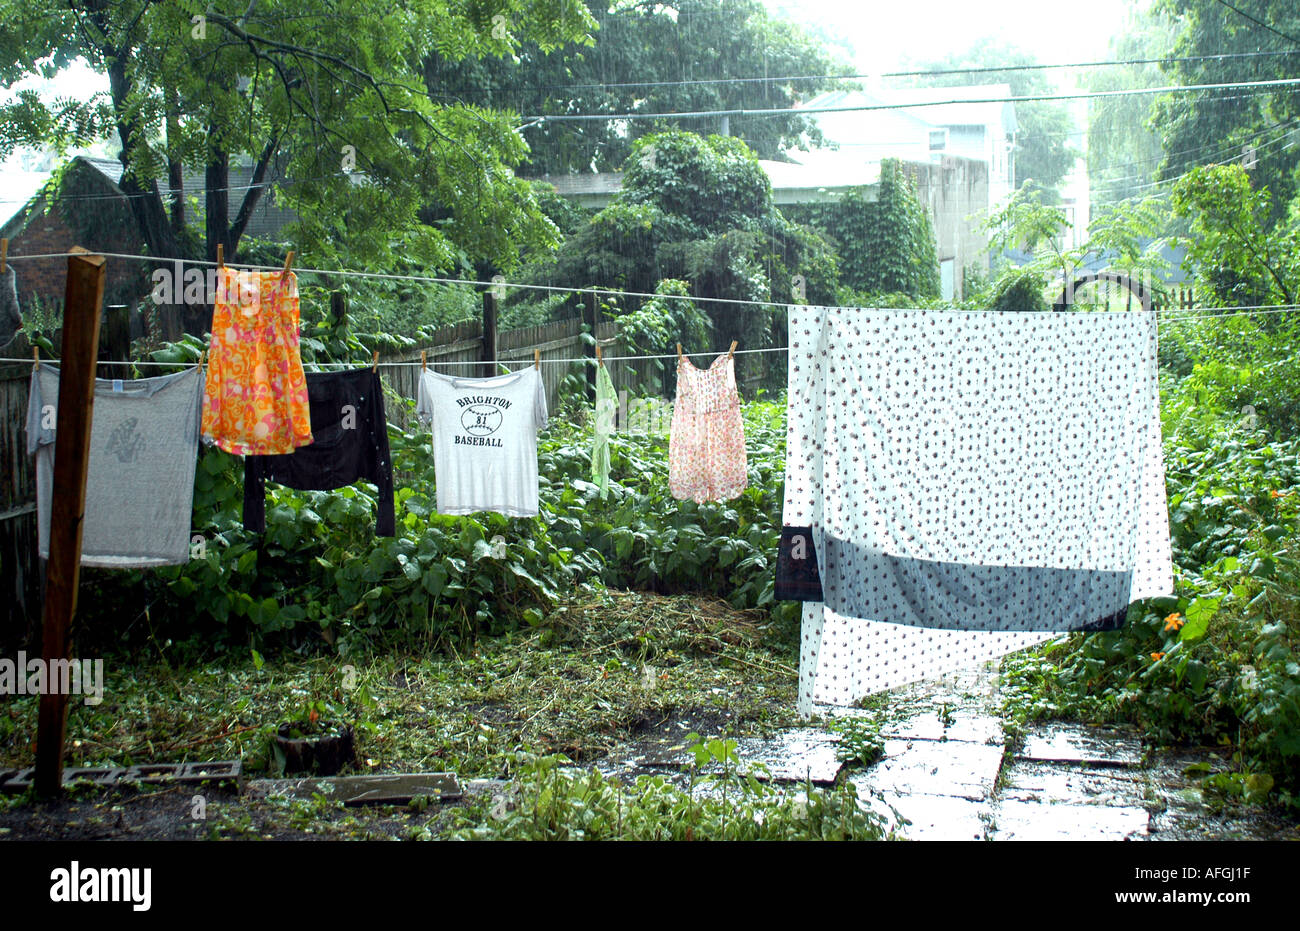 Laundry on line in rain Stock Photo: 4551198 - Alamy